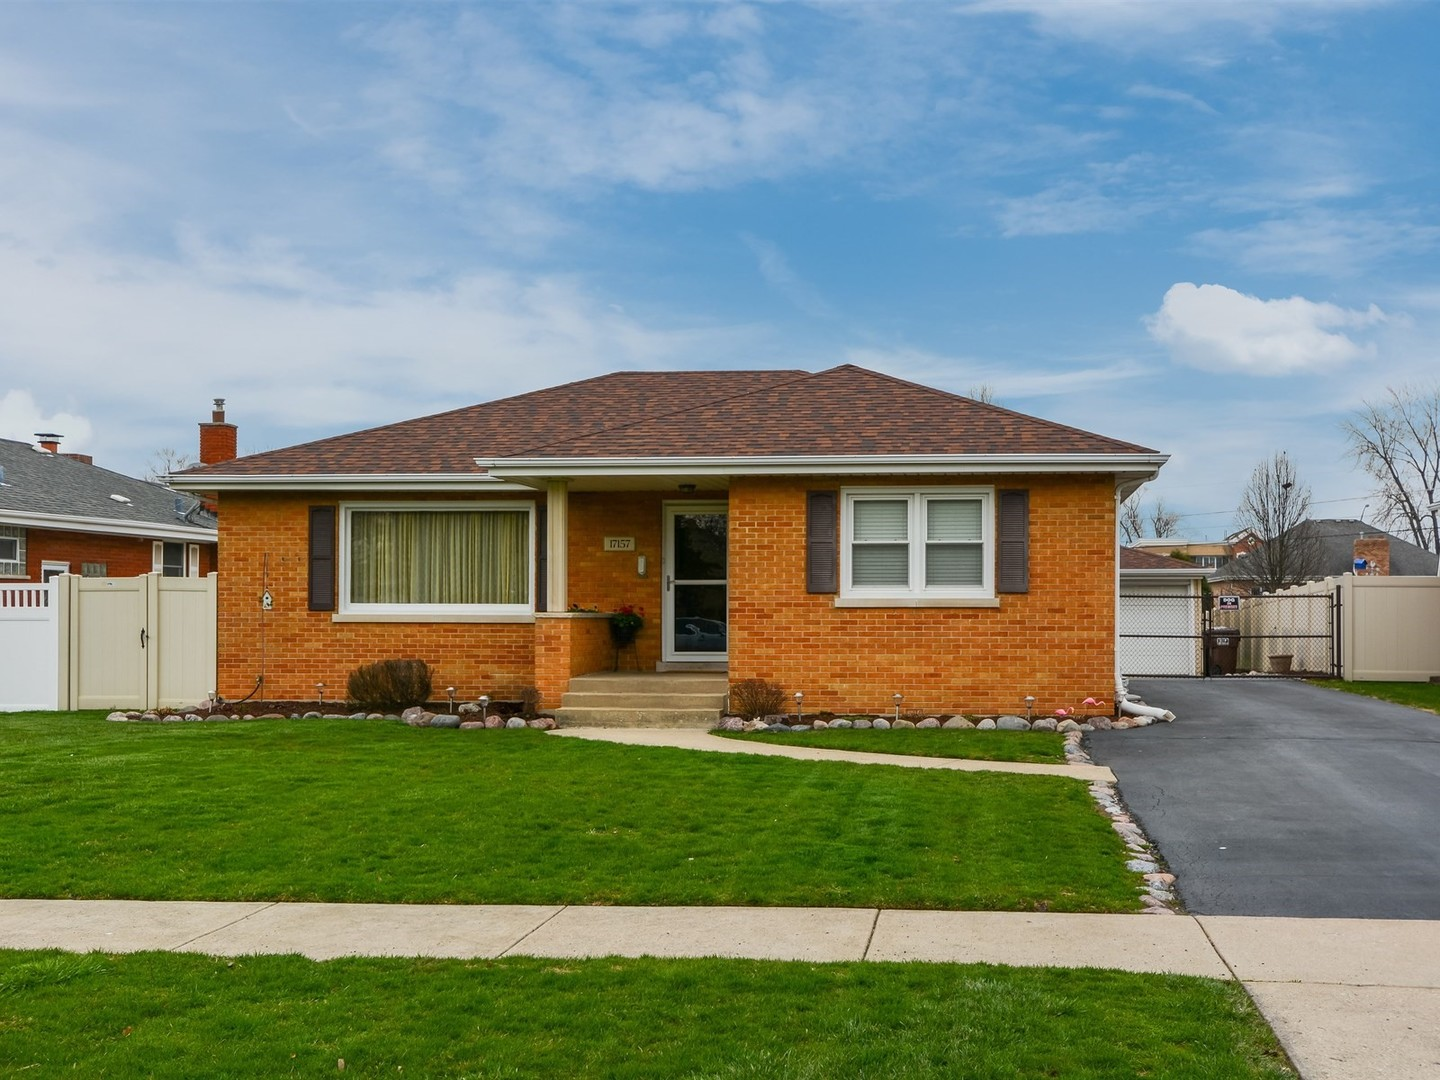 17157 69th Avenue, Tinley Park in Cook County, IL 60477 Home for Sale